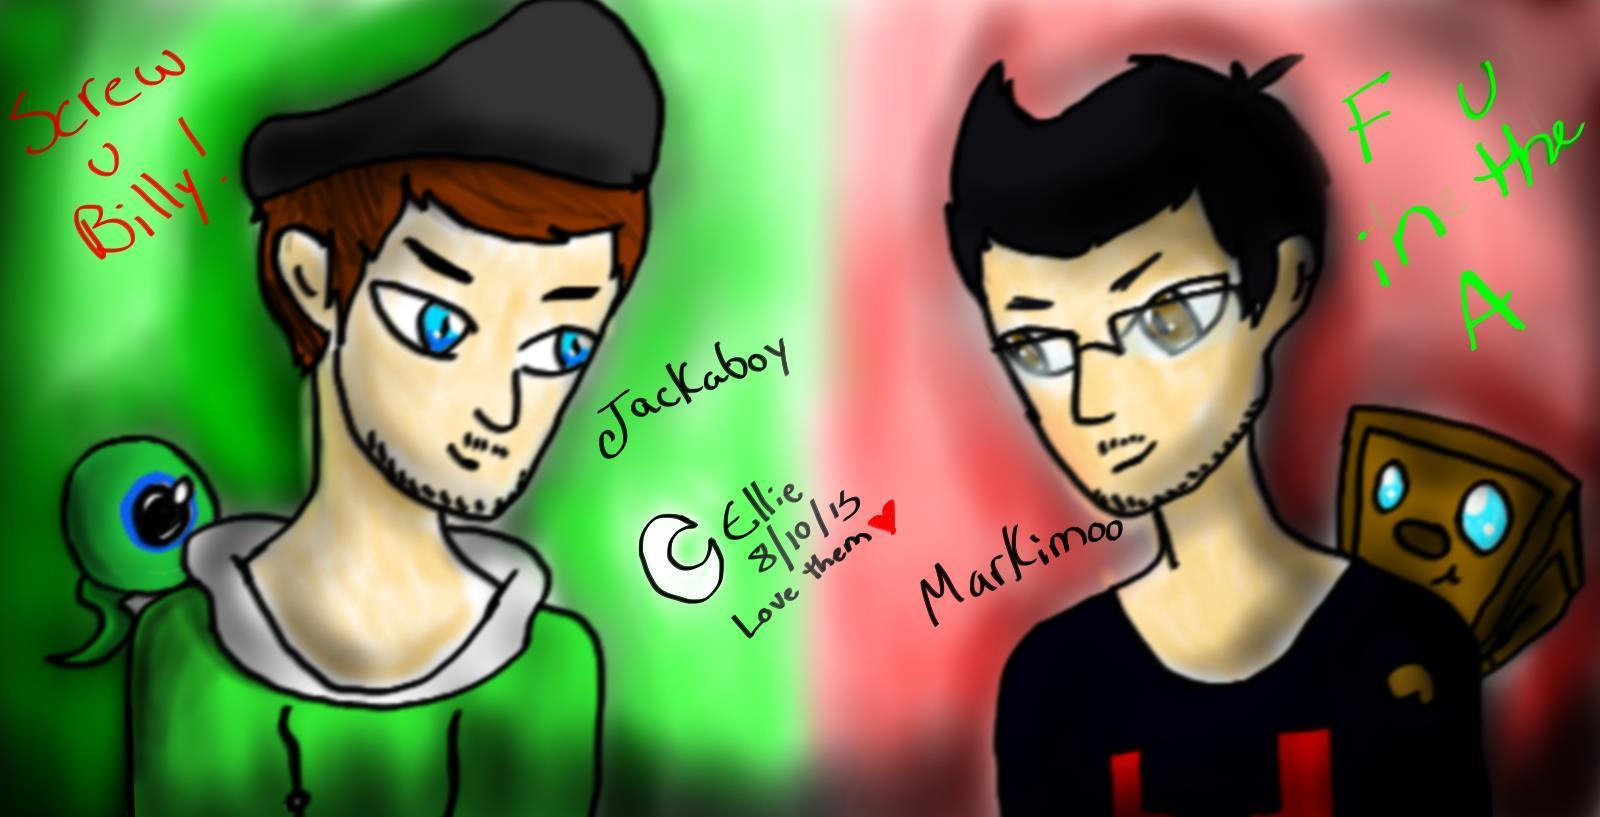 Markiplier or Jacksepticeye